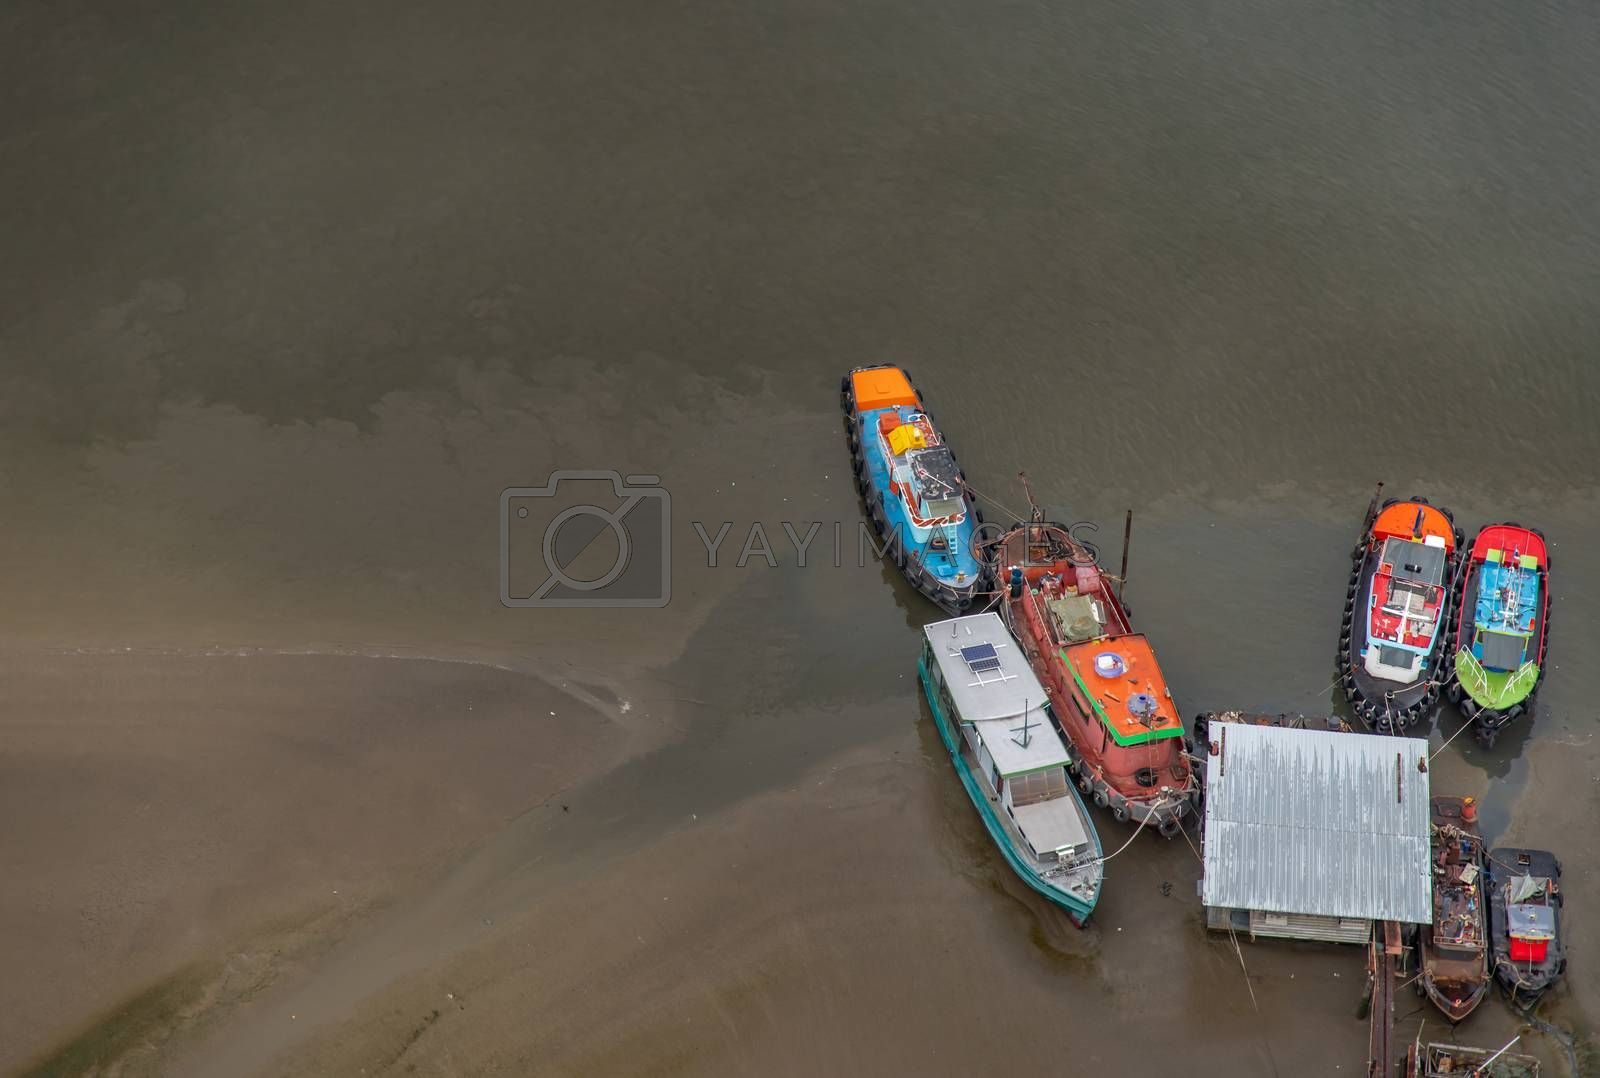 Bangkok, Thailand - May 11, 2020 : Many boats docked in the Chao Phraya River in the evening, Top view. Selective focus.